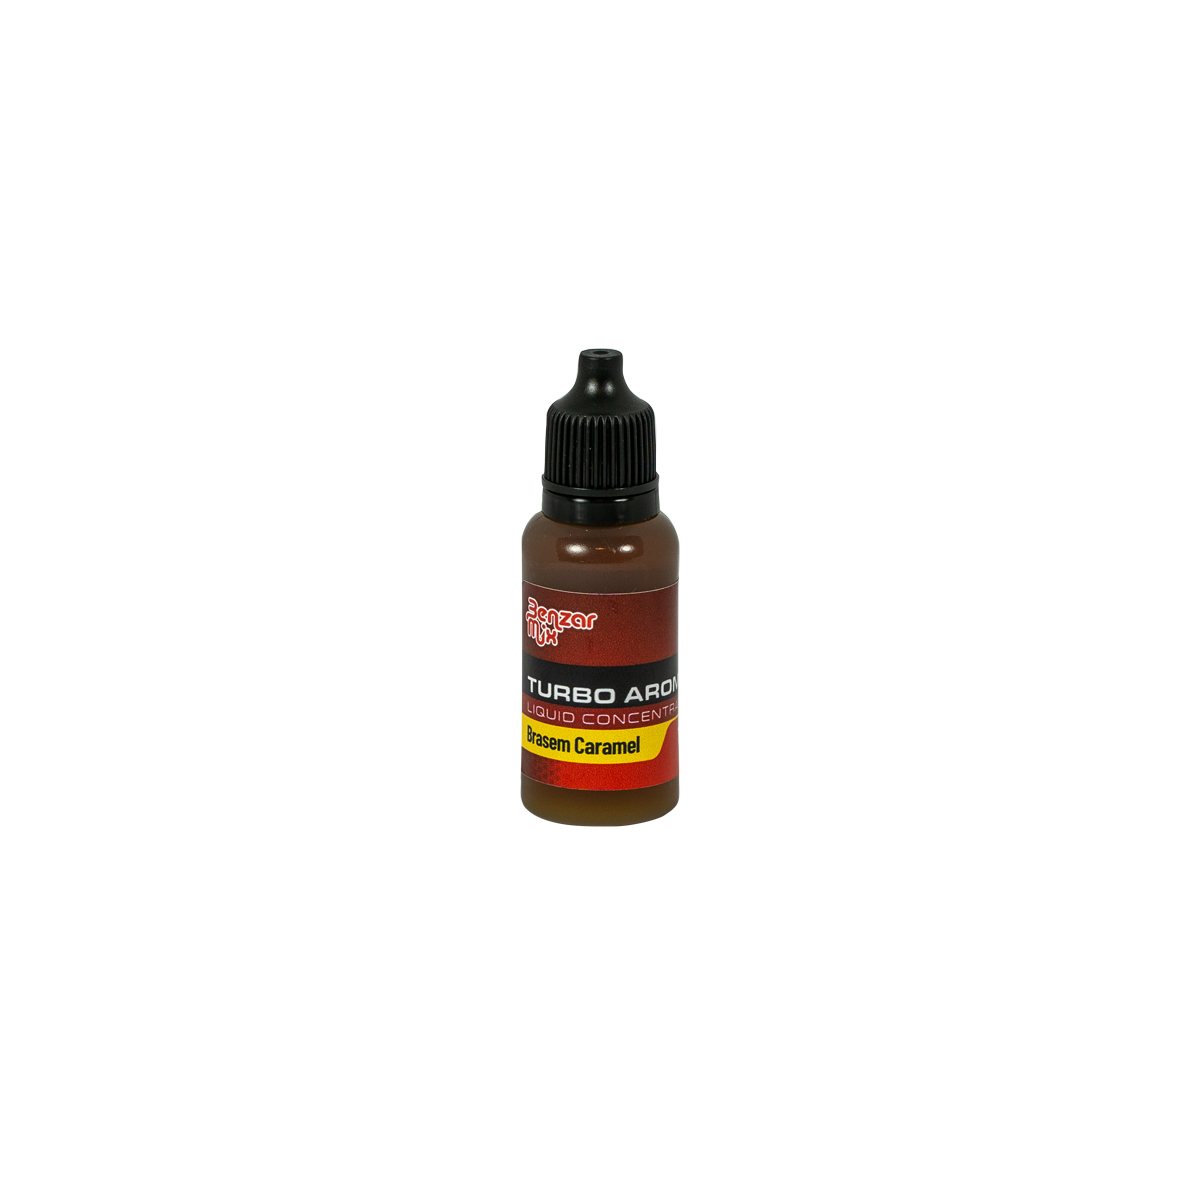 BENZAR MIX TURBO AROMA BRASEM KARAMELL 15ML